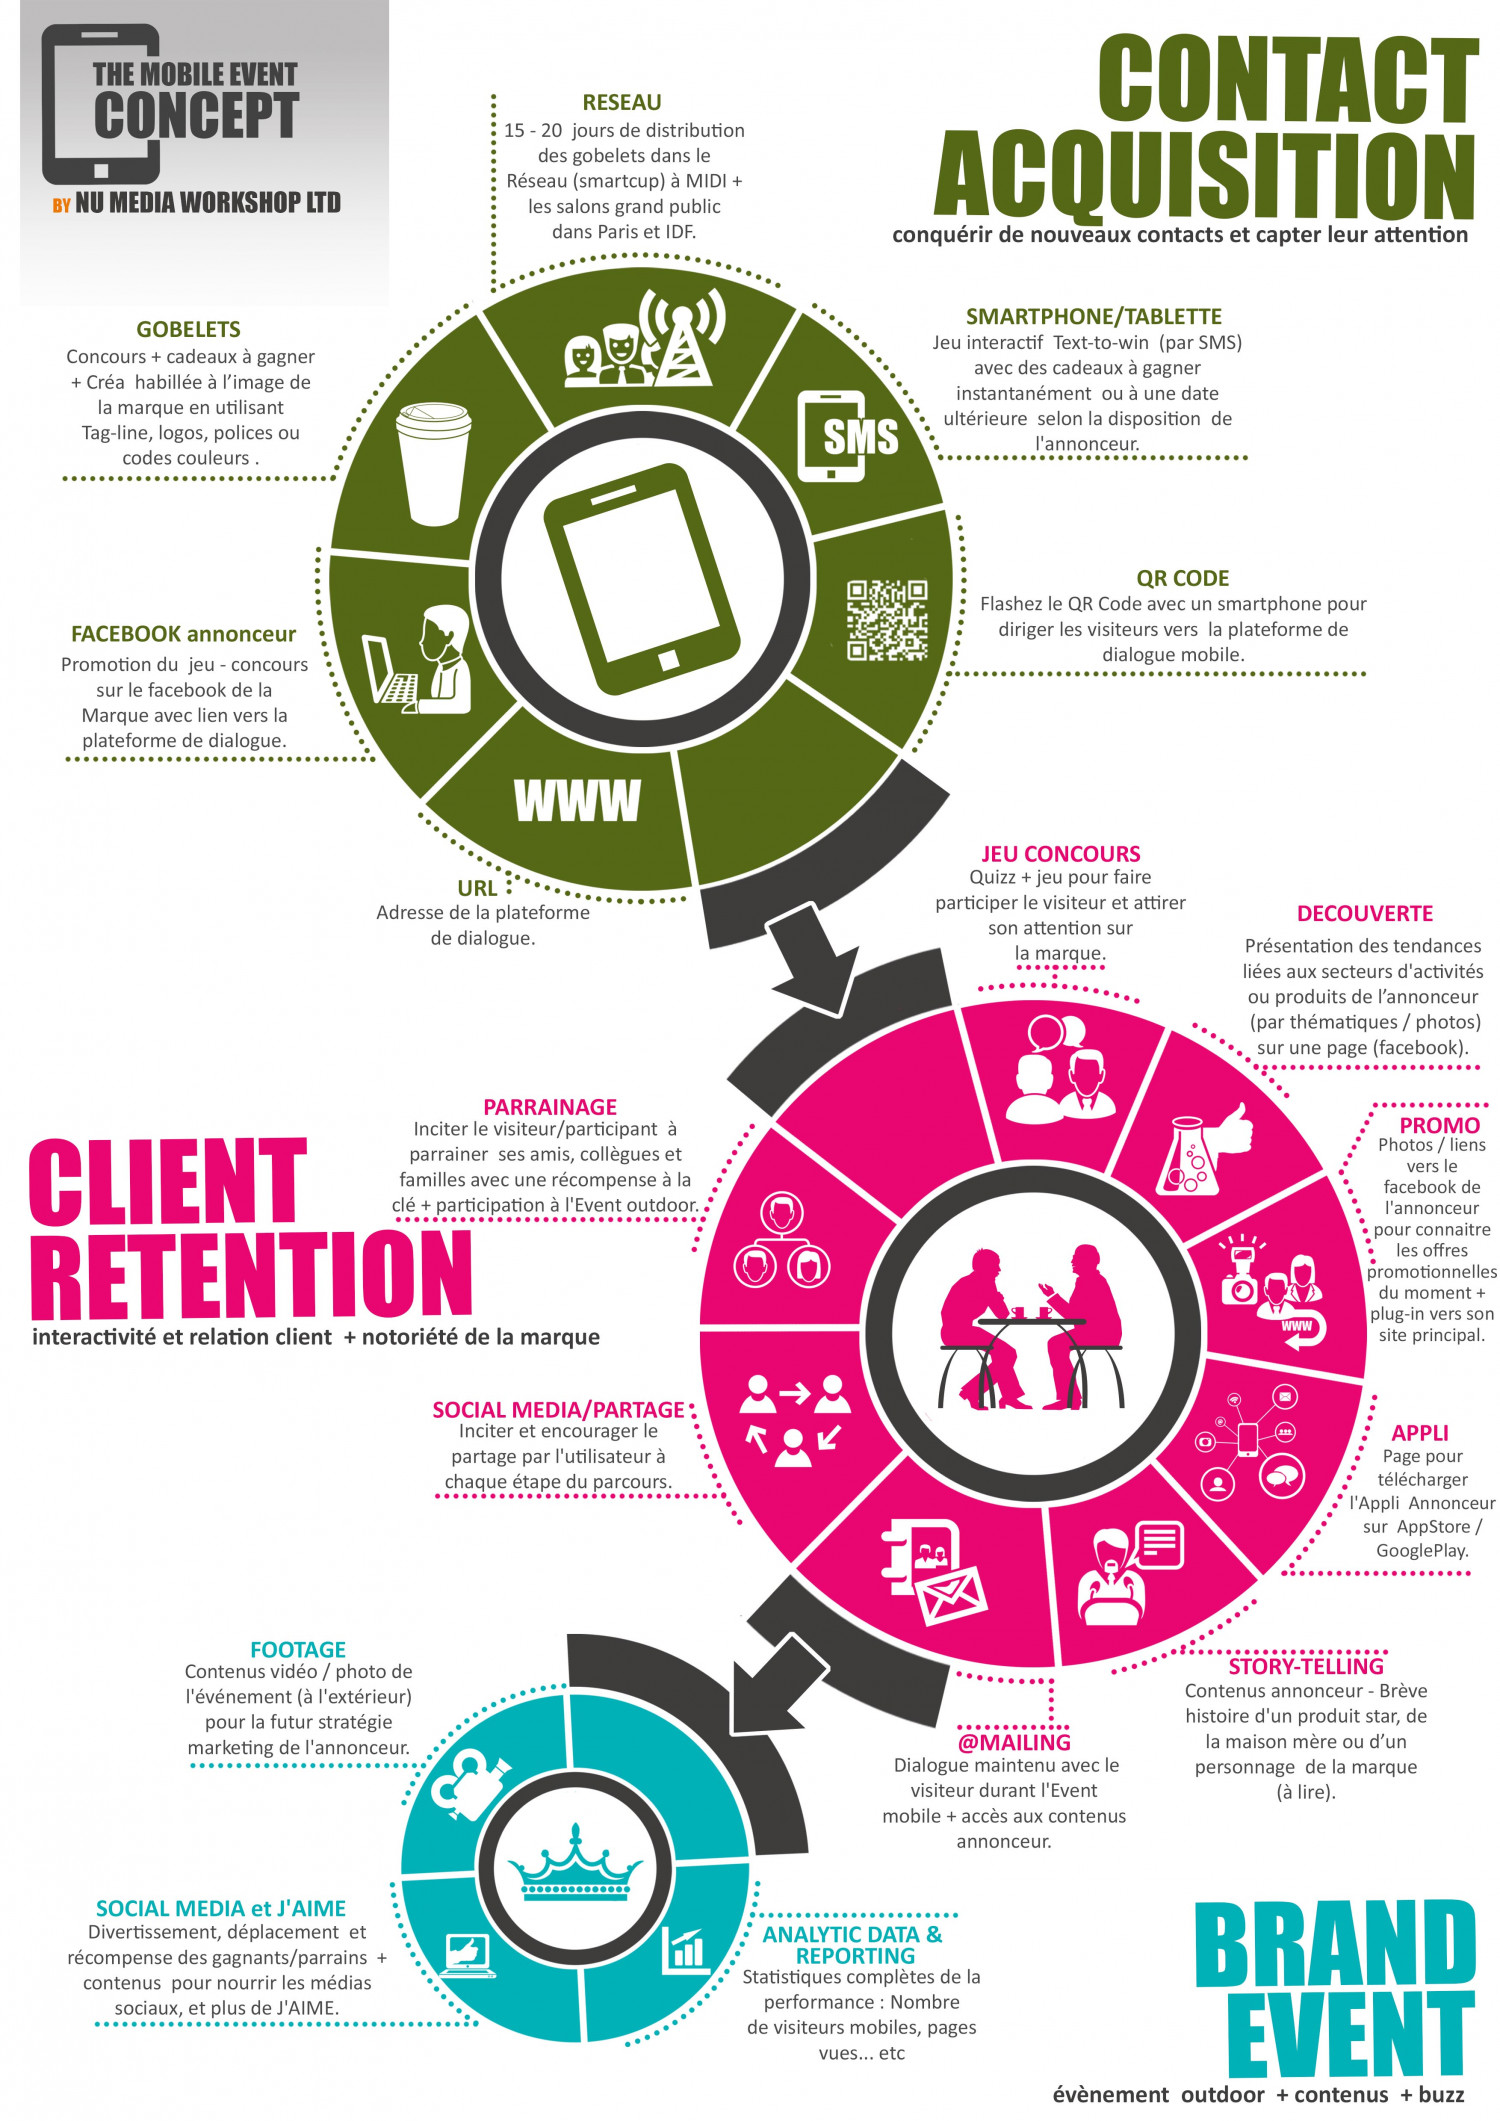 Event Organizing Agency Infographic